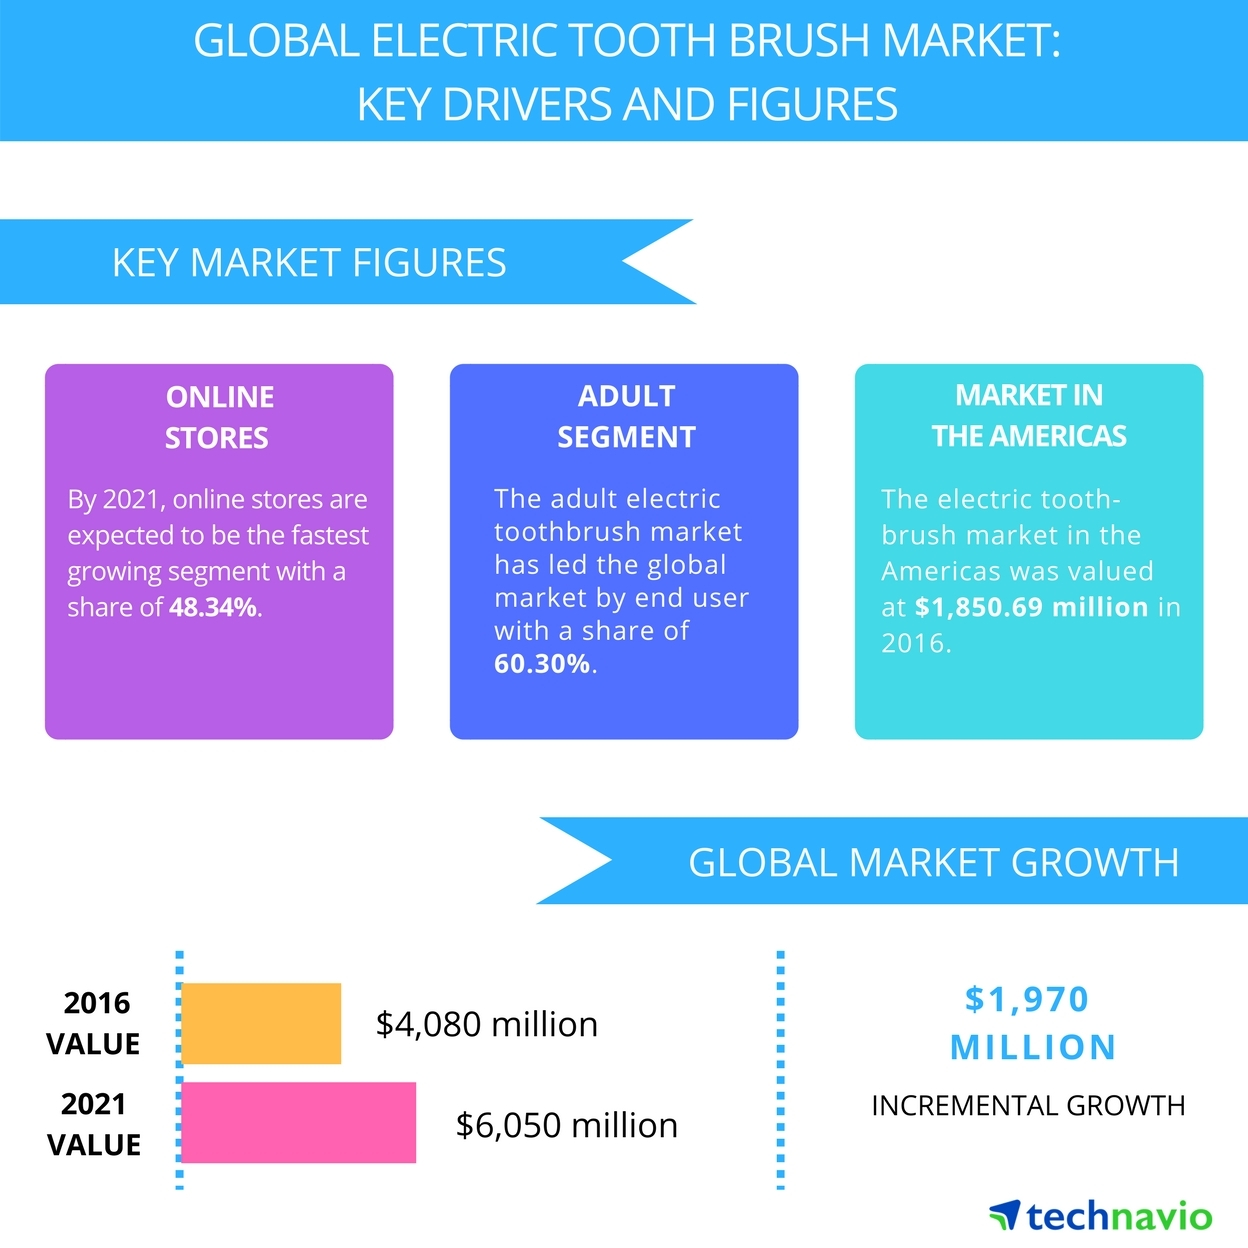 Best Sonic Toothbrush 2021 Top 5 Vendors in the Global Electric Tooth Brush Market from 2017